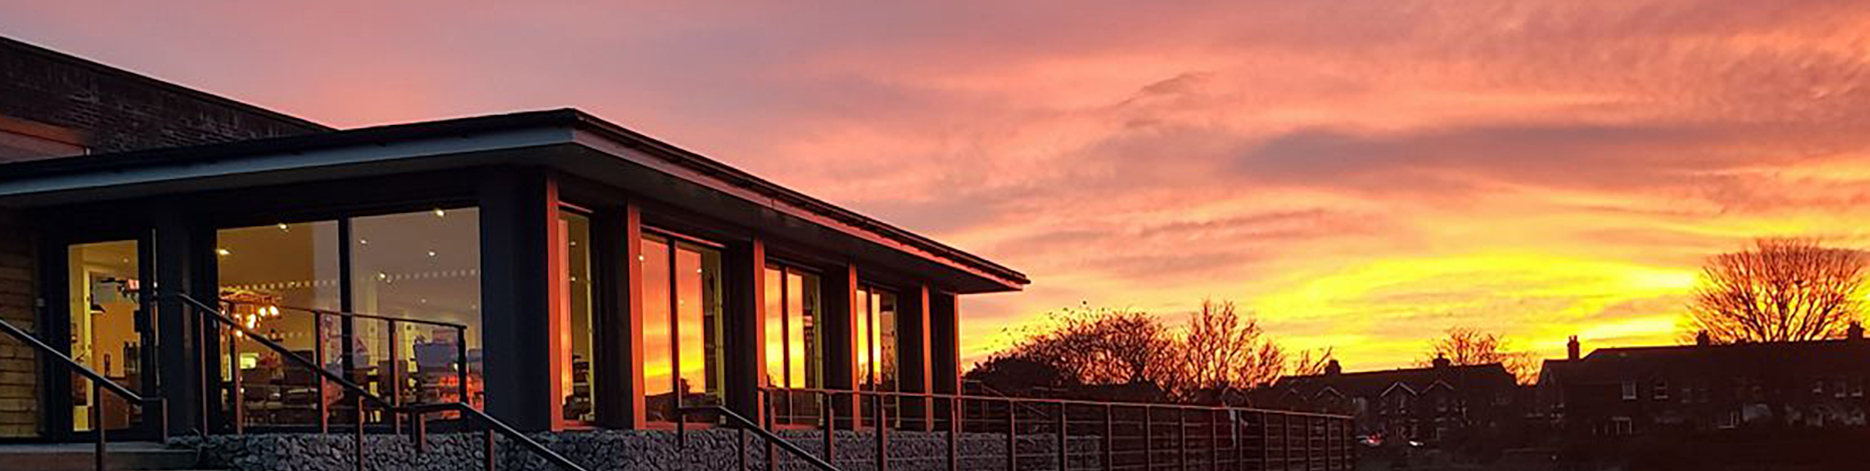 Vibrant sunset reflecting off the building at Perch in Princes Park